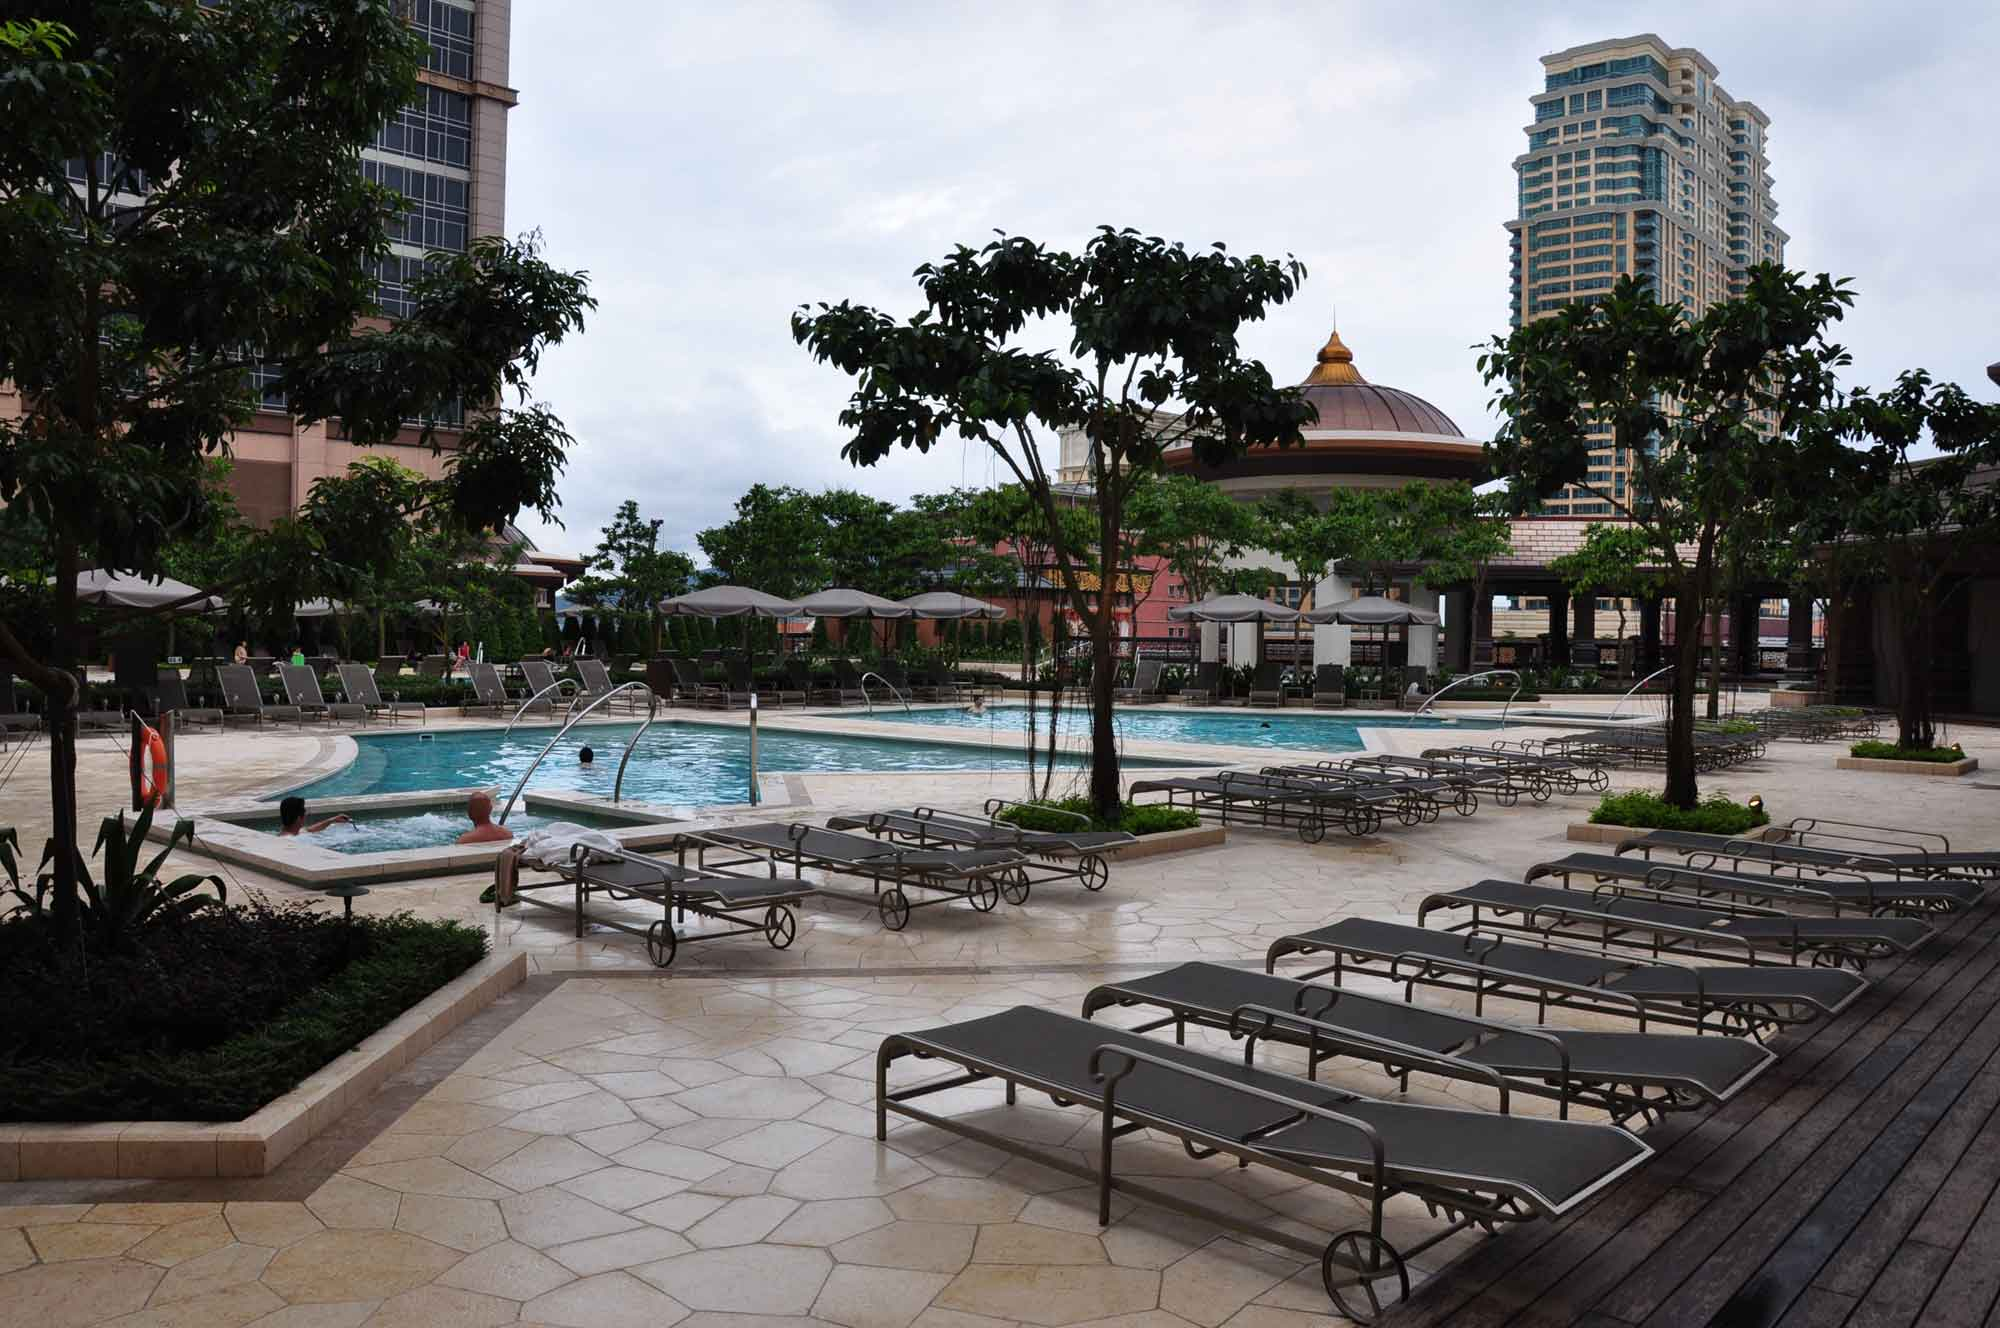 Sands Cotai Holiday Inn outdoor pool